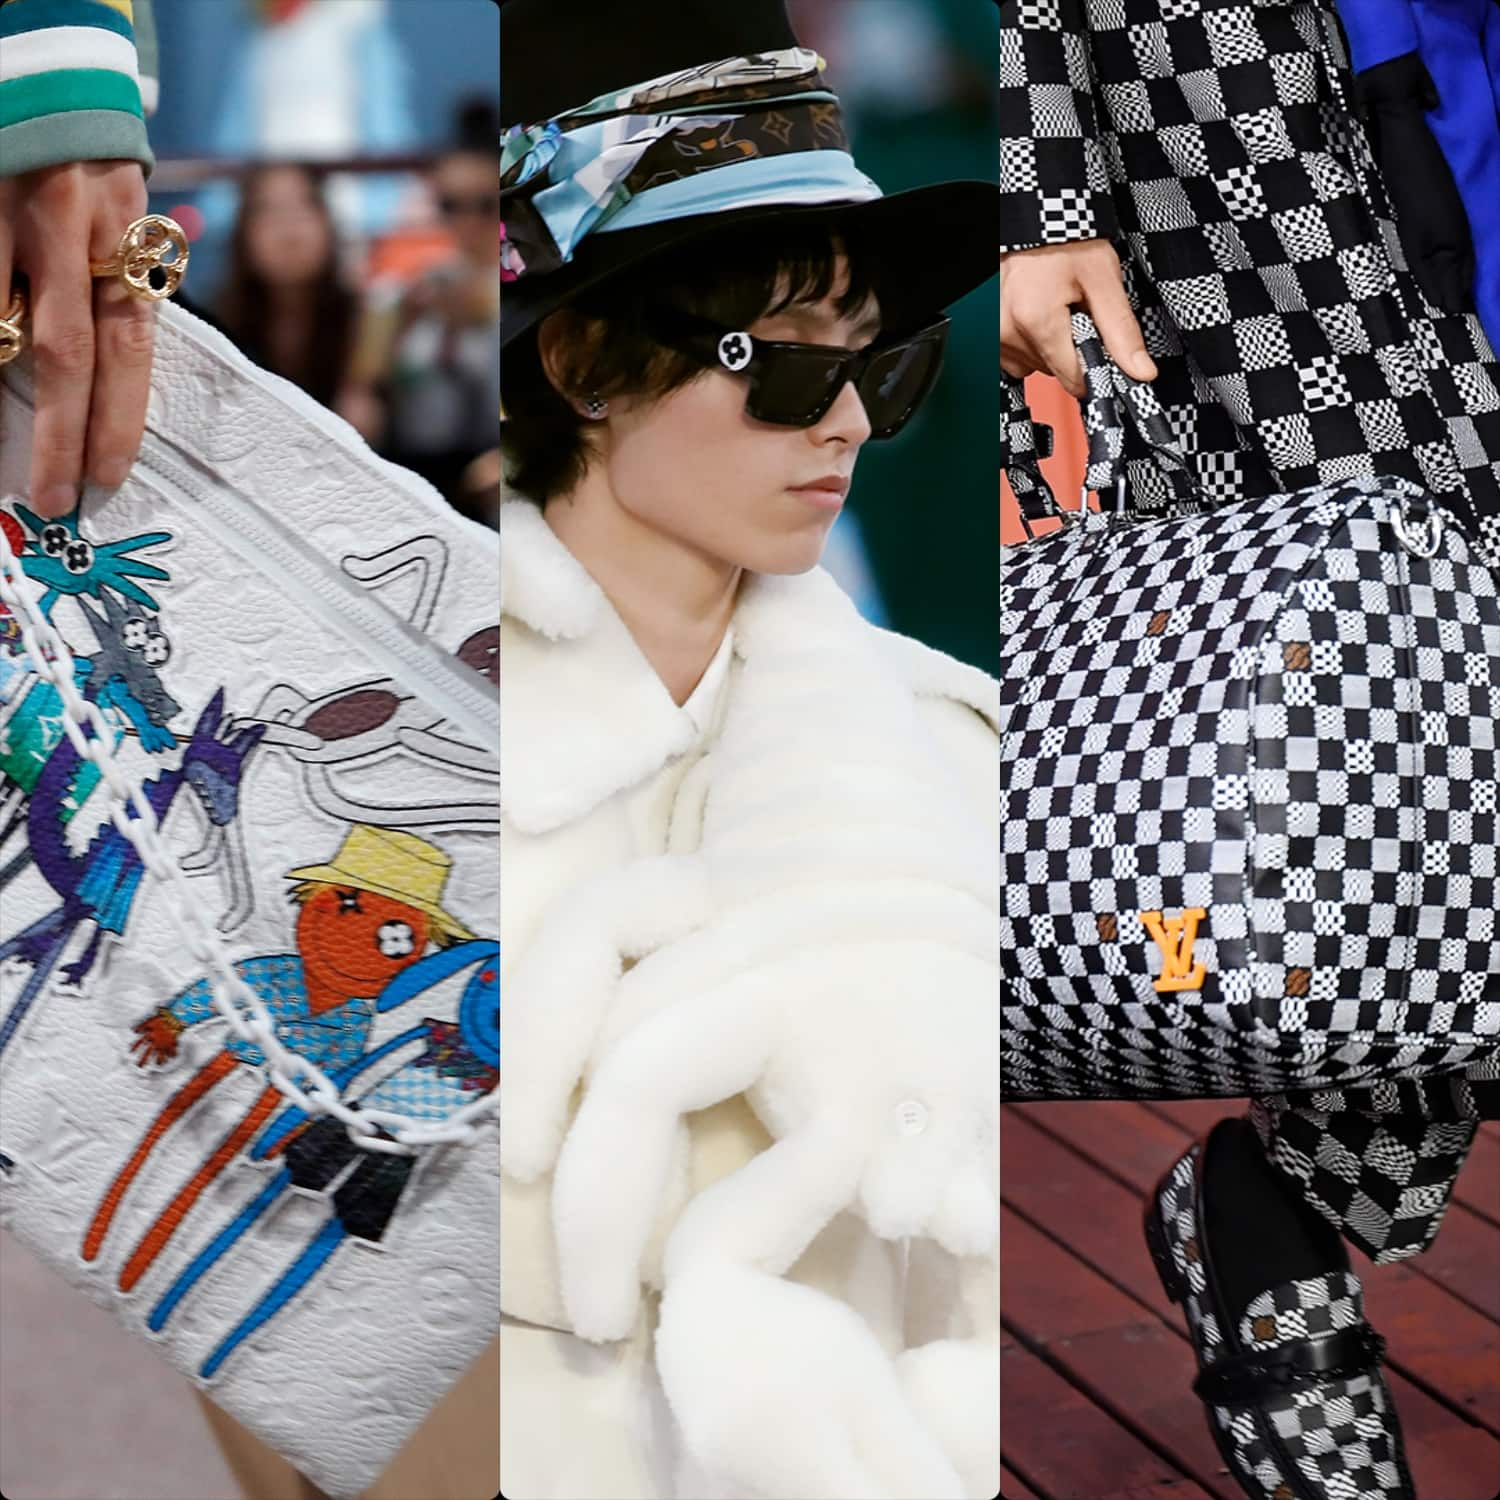 Louis Vuitton Menswear Spring Summer 2021 by RUNWAY MAGAZINE